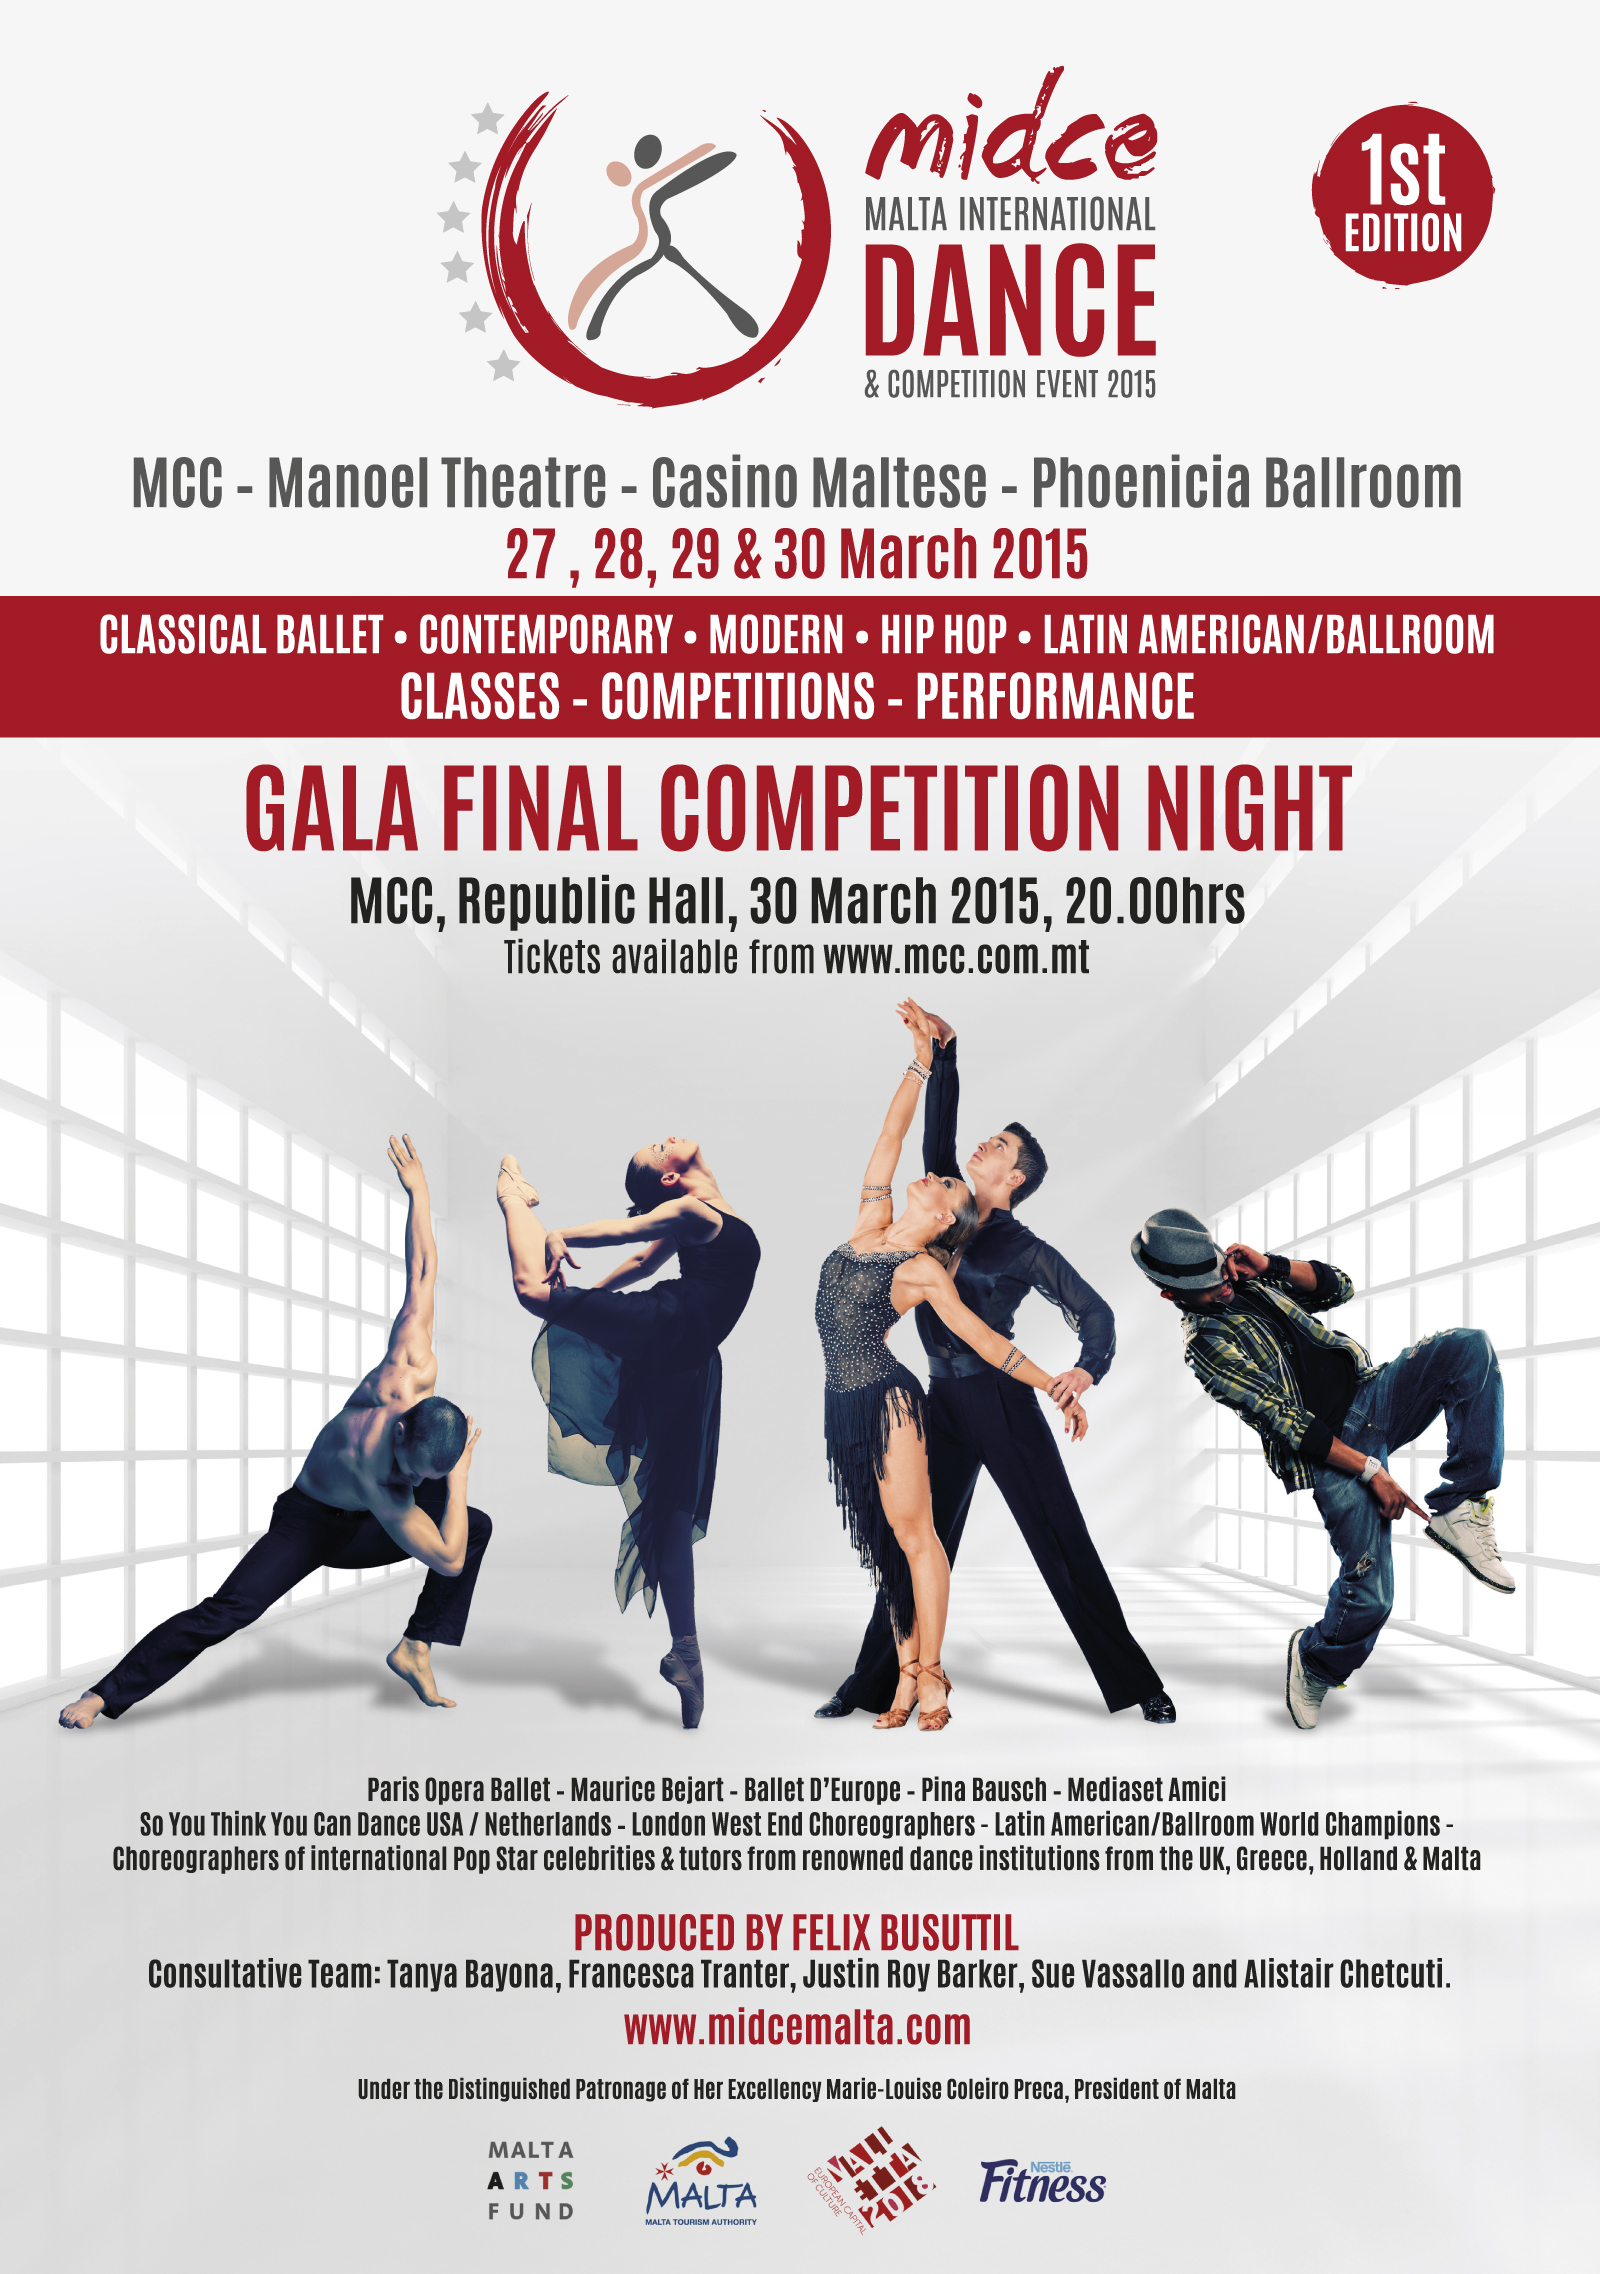 MALTA INTERNATIONAL DANCE COMPETITION EVENT